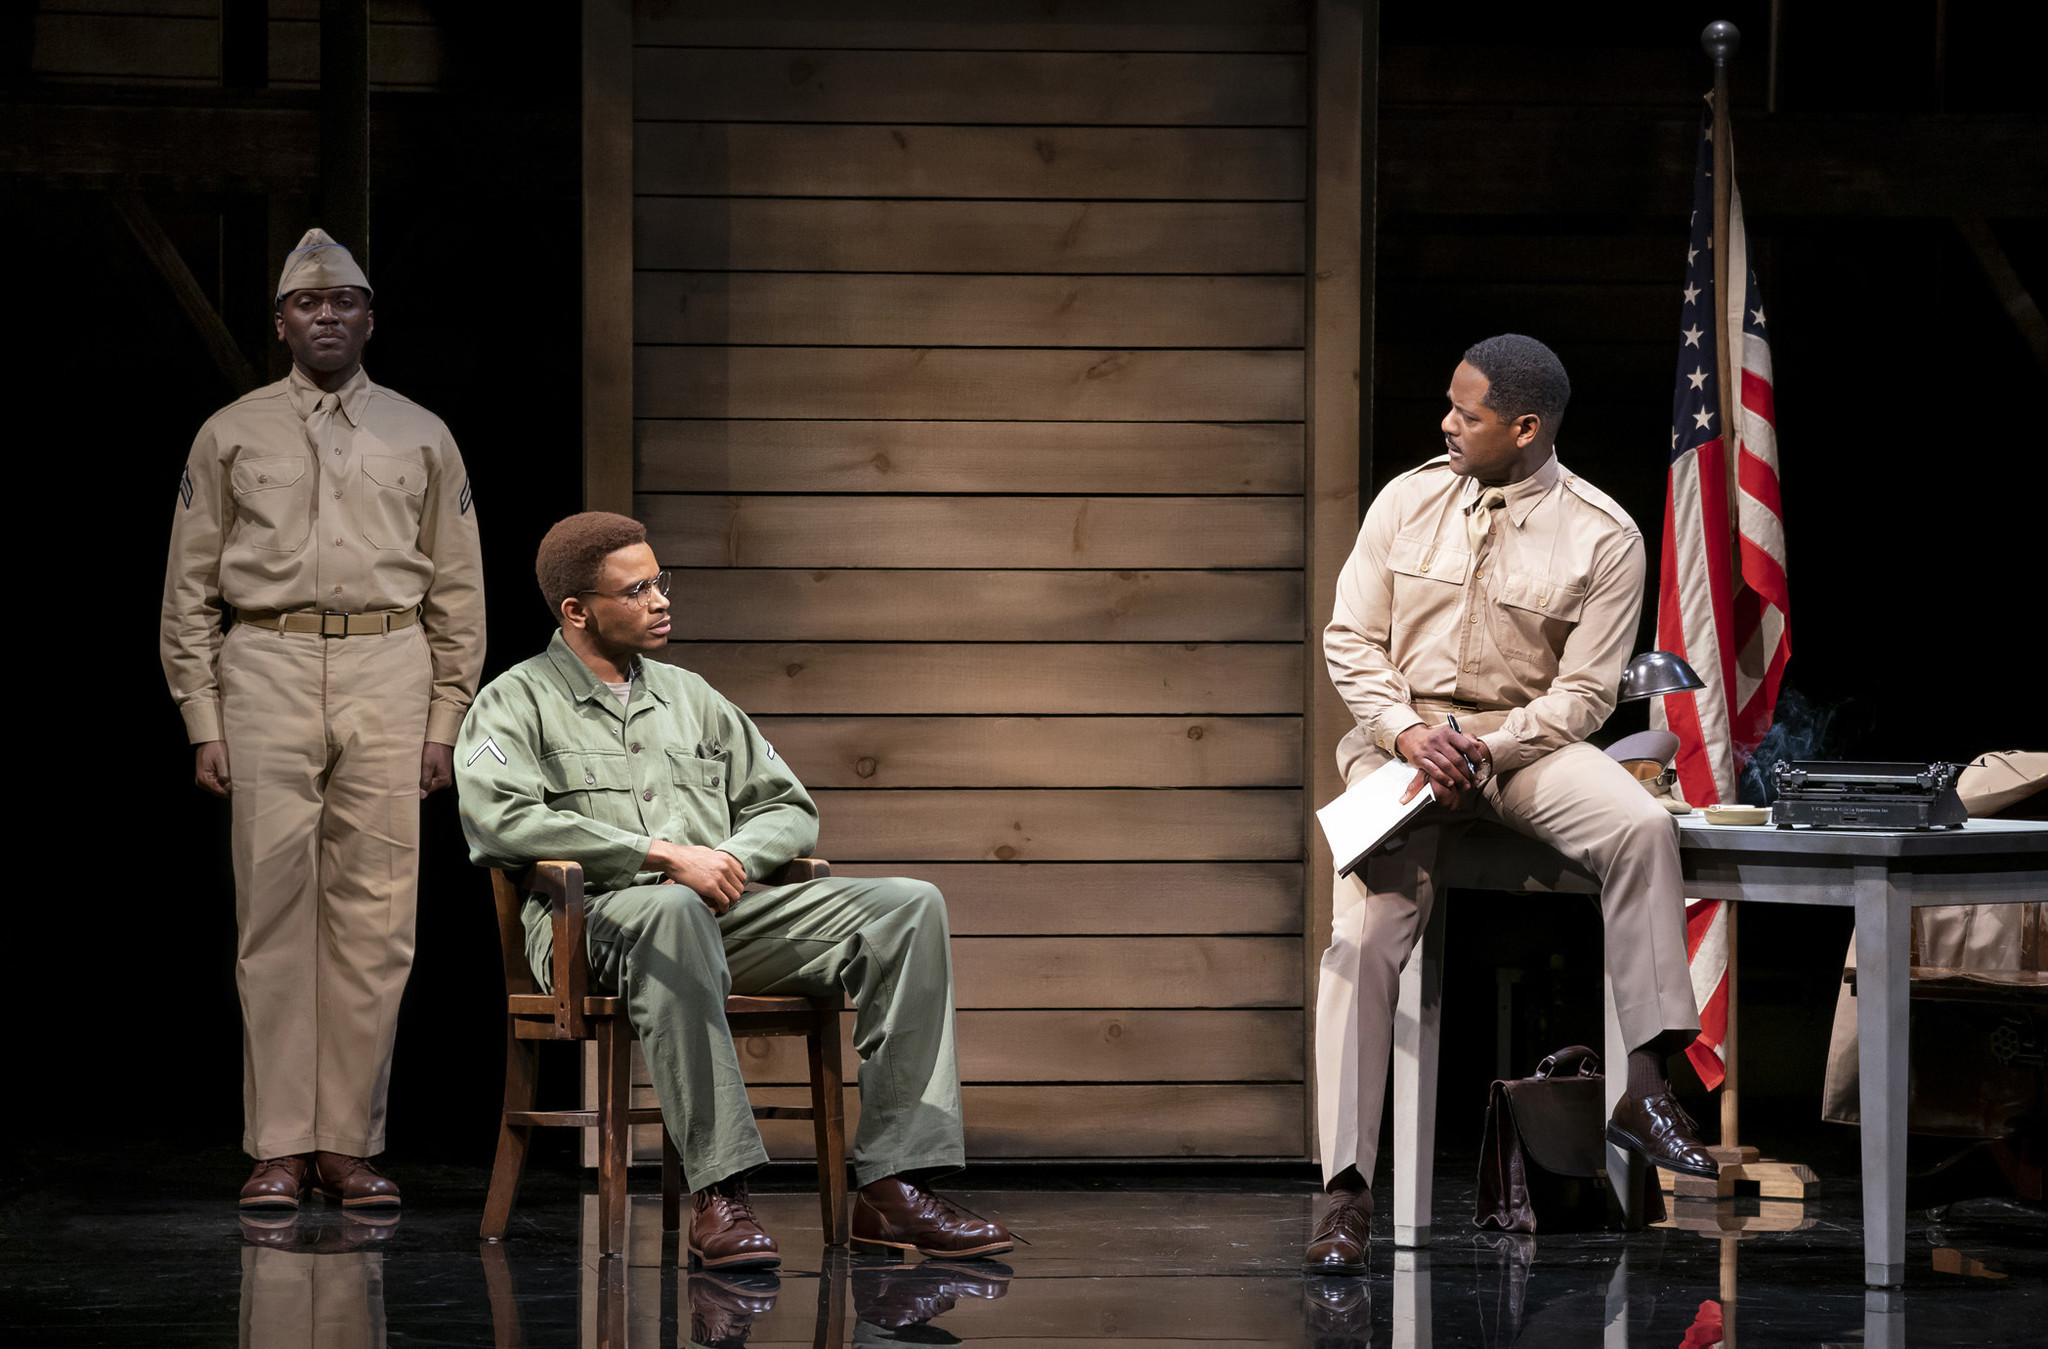 Broadway review: 'A Soldier's Play' is as powerful as ever after nearly 40 years